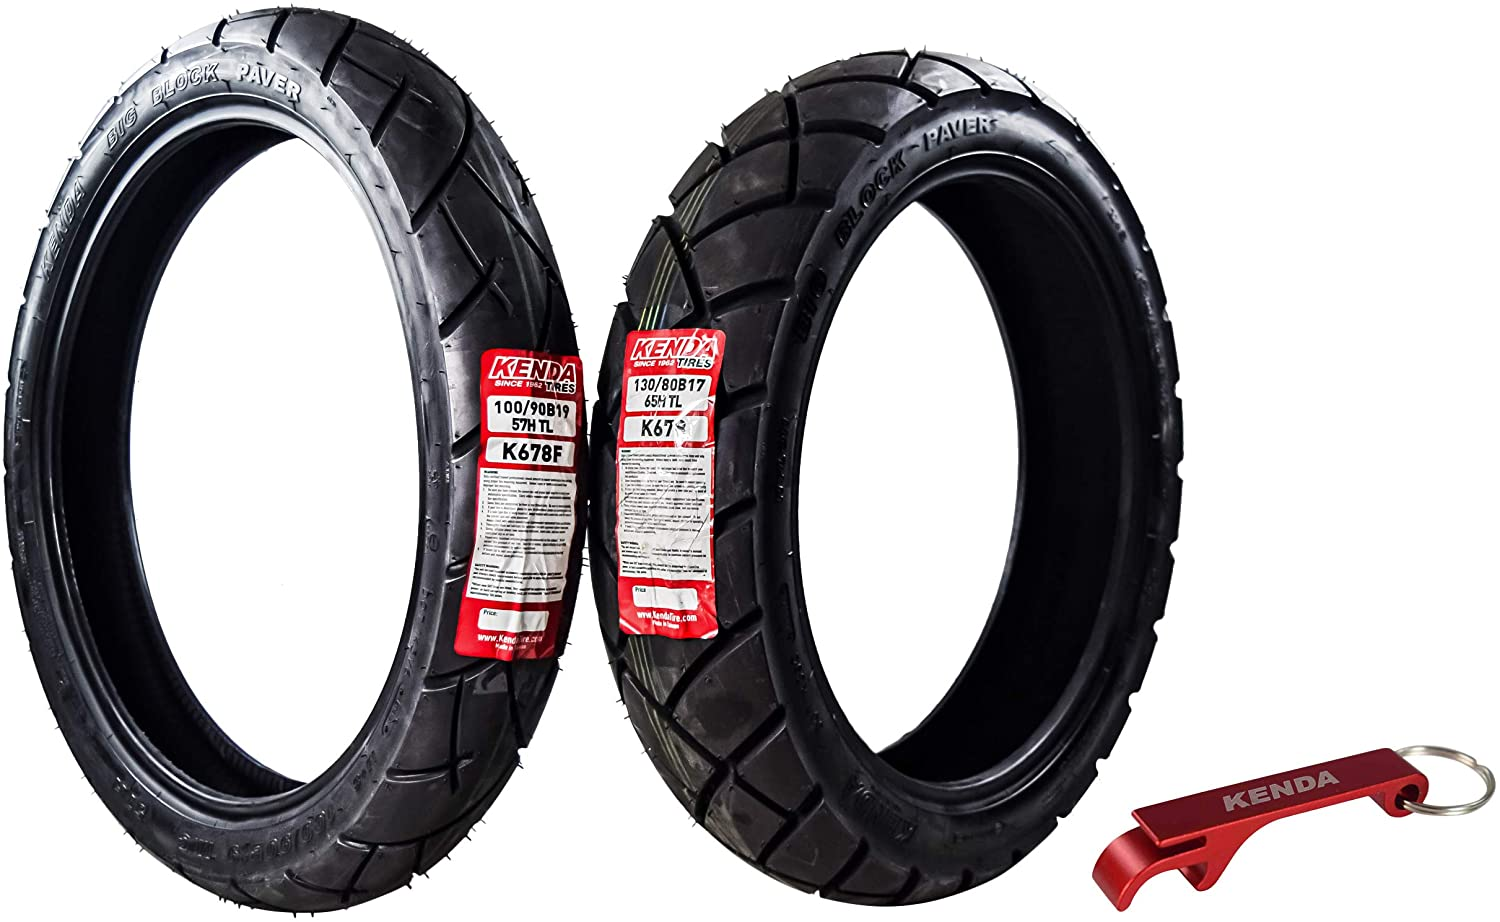 Kenda Big Block Paver Dual Sport Motorcycle Tires 100/90B19 Front 130/80B17 Rear 100/90-19 130/80-17